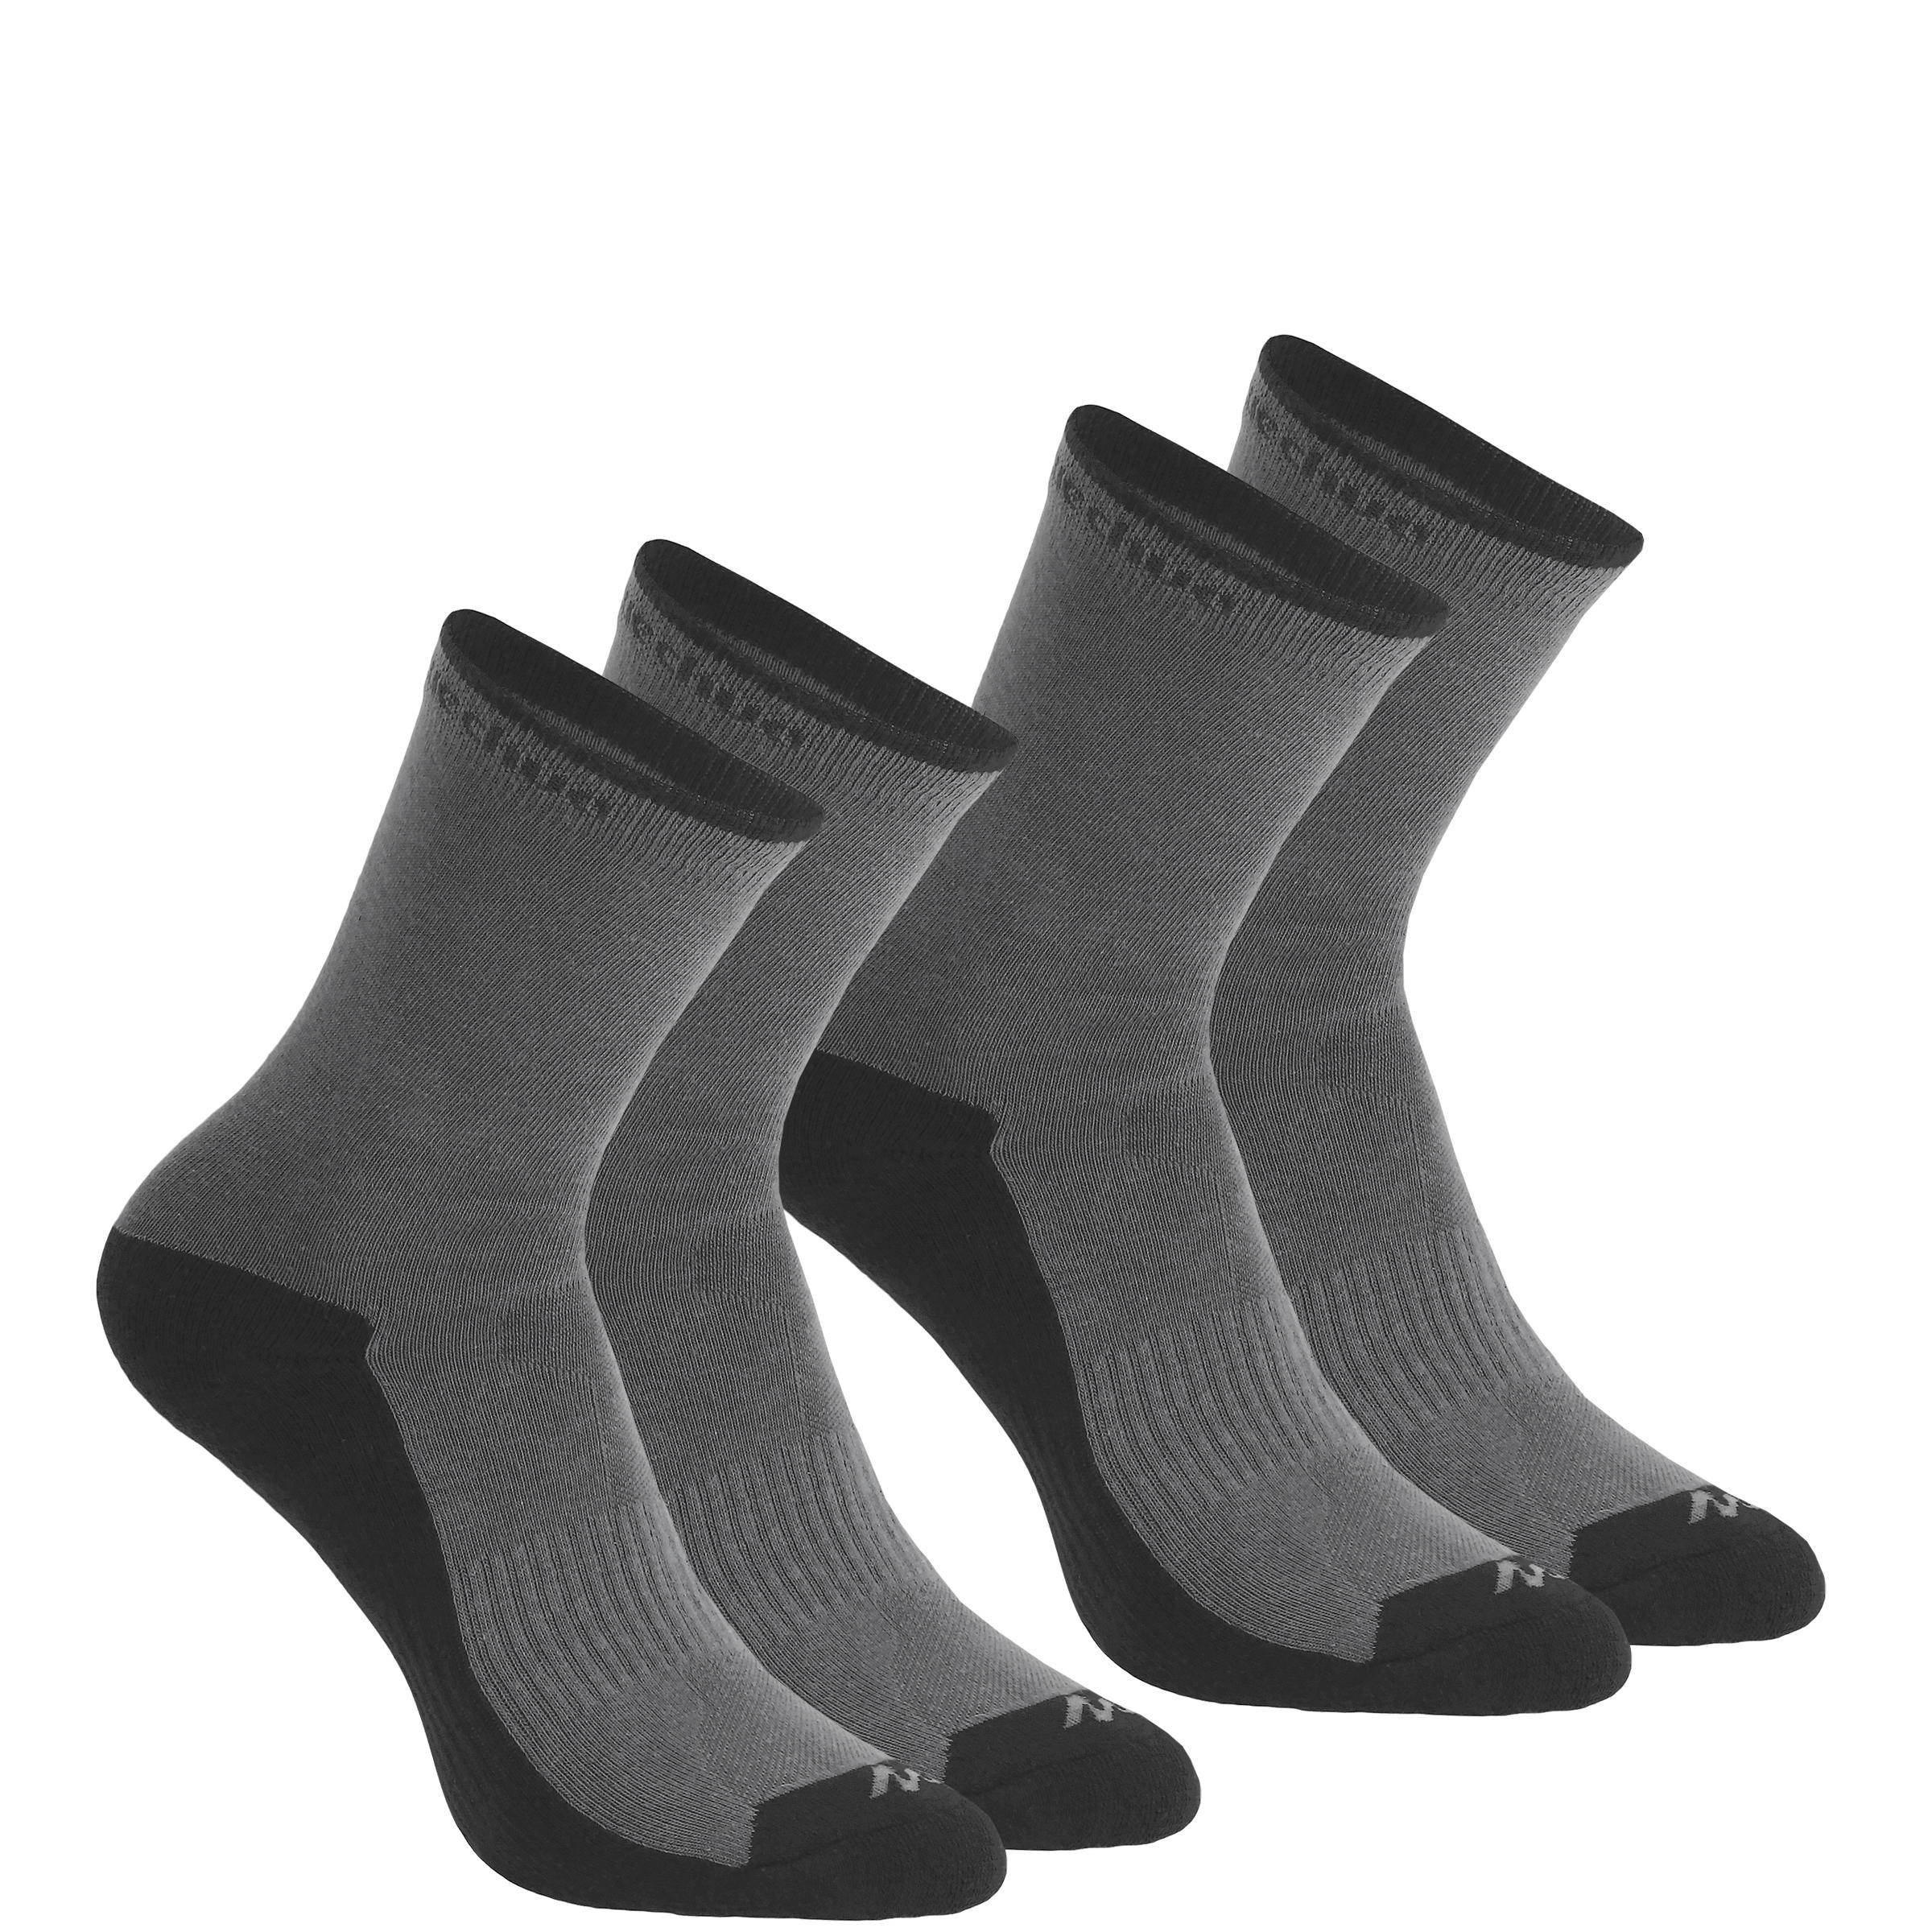 2 Pairs of Arpenaz 50 Adult High-top Hiking Socks - Grey.